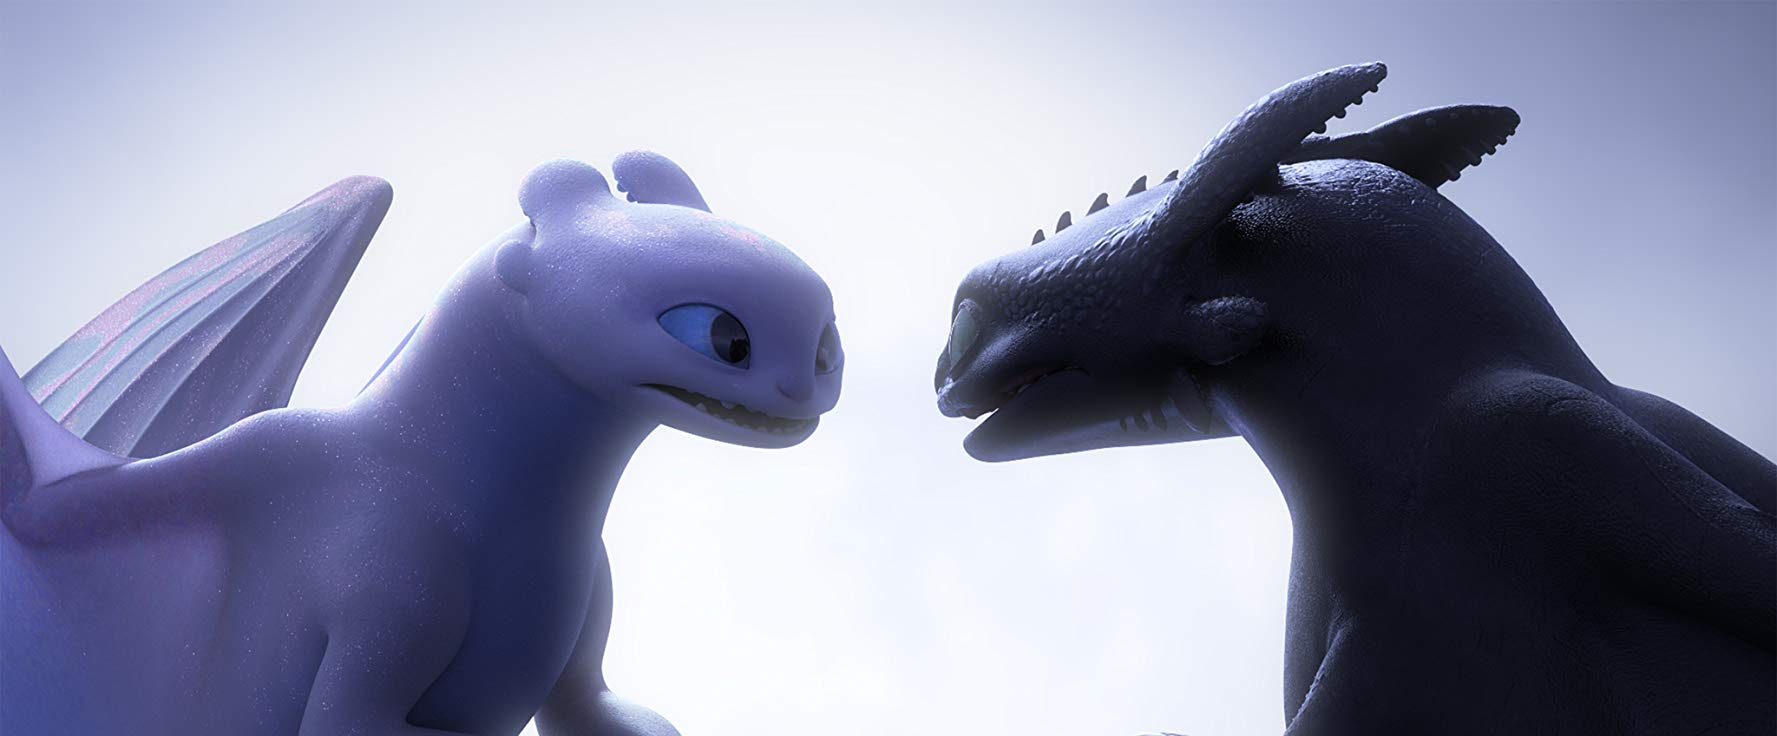 Toothless and Light Fury - Dragon Trainer The hidden world